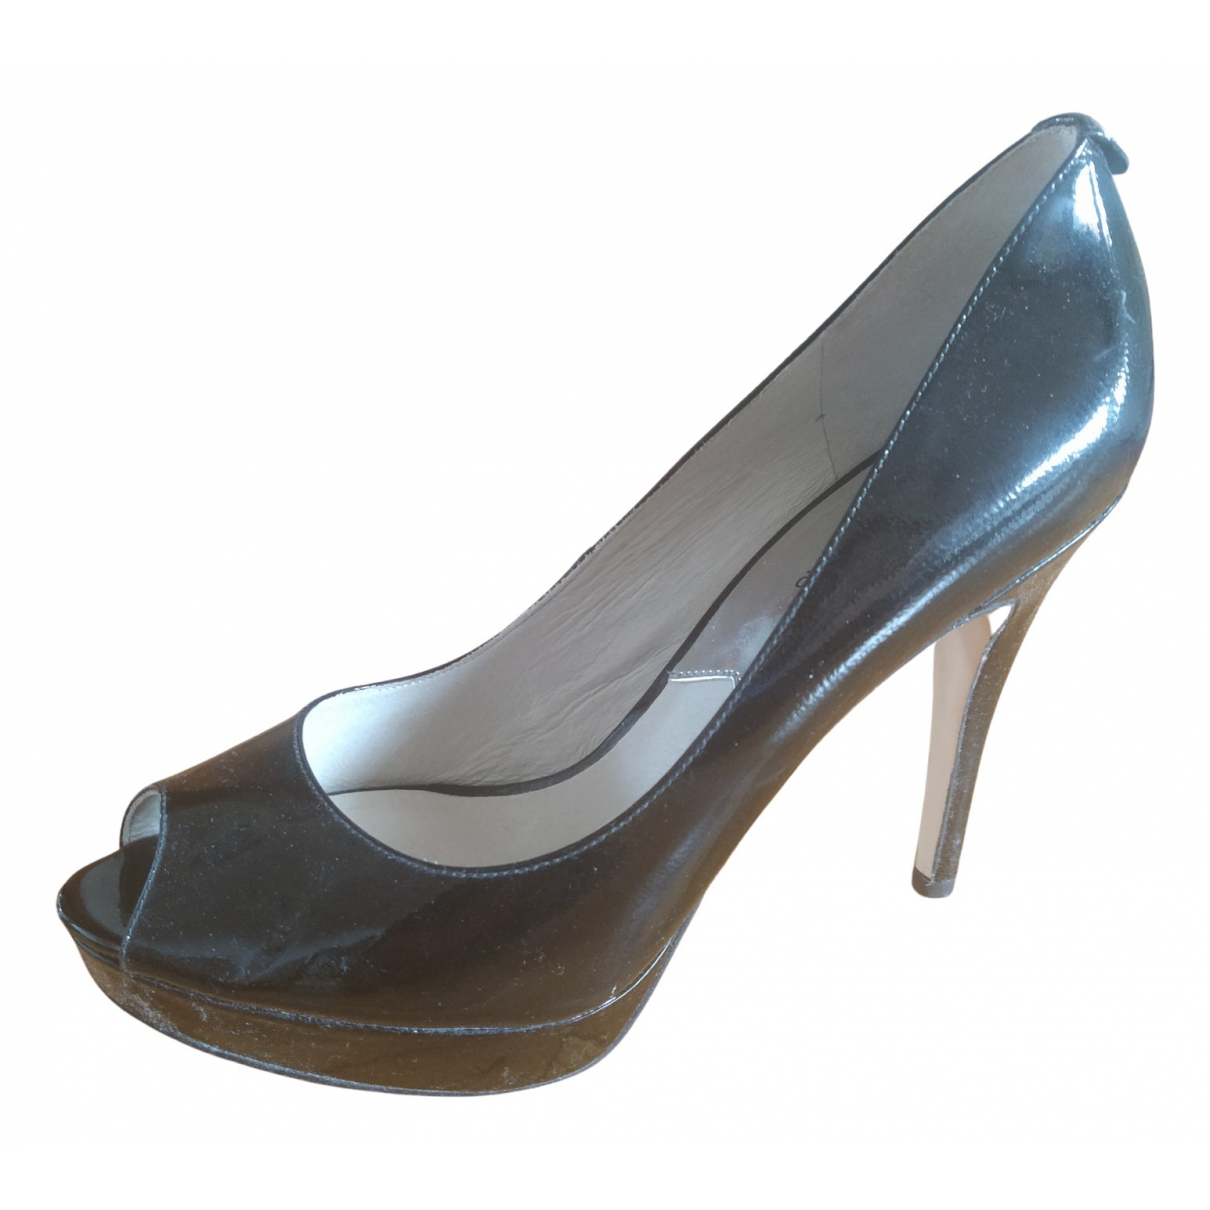 Michael Kors N Black Patent leather Heels for Women 40 EU